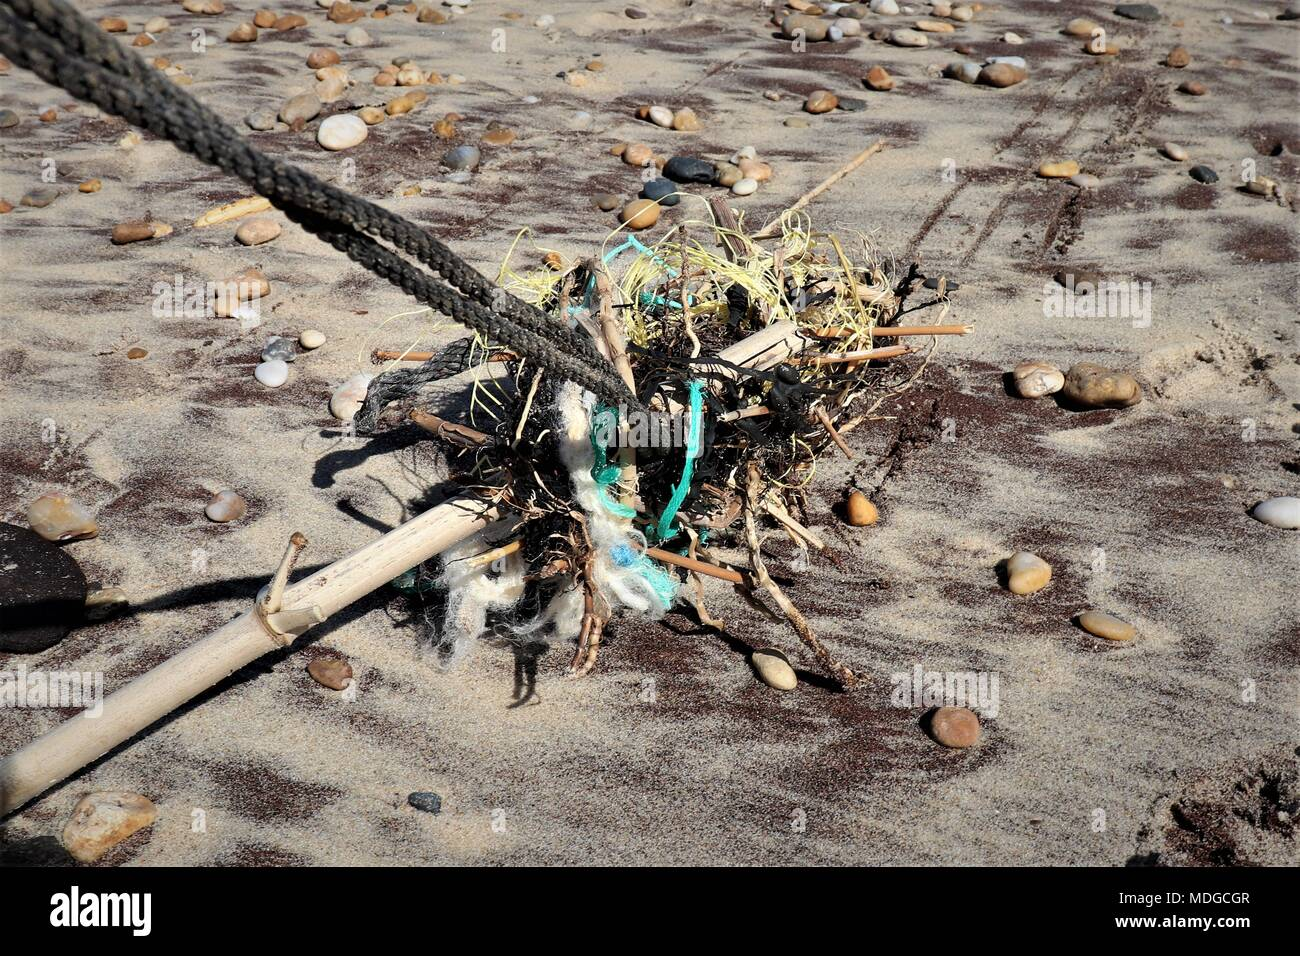 Flotsam and Jetsam on the HIgh Tide Line at Montalivet, Aquitaine, France, with Plastics and Micro Beads - Stock Image